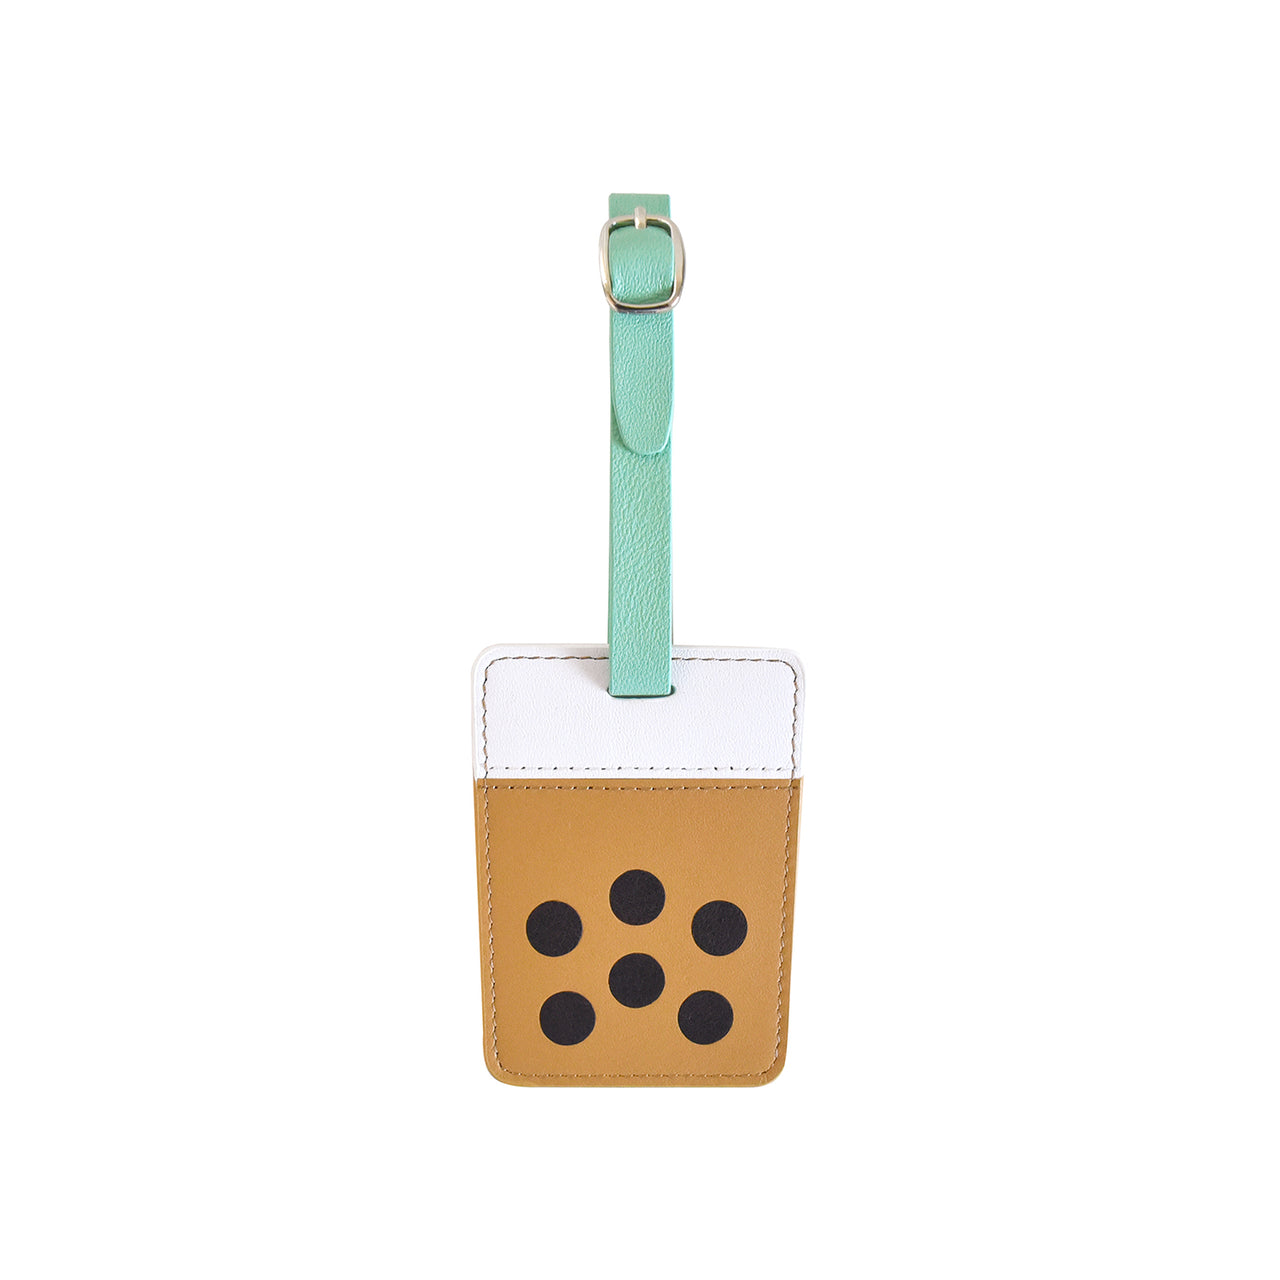 Boba Tea Luggage Tag